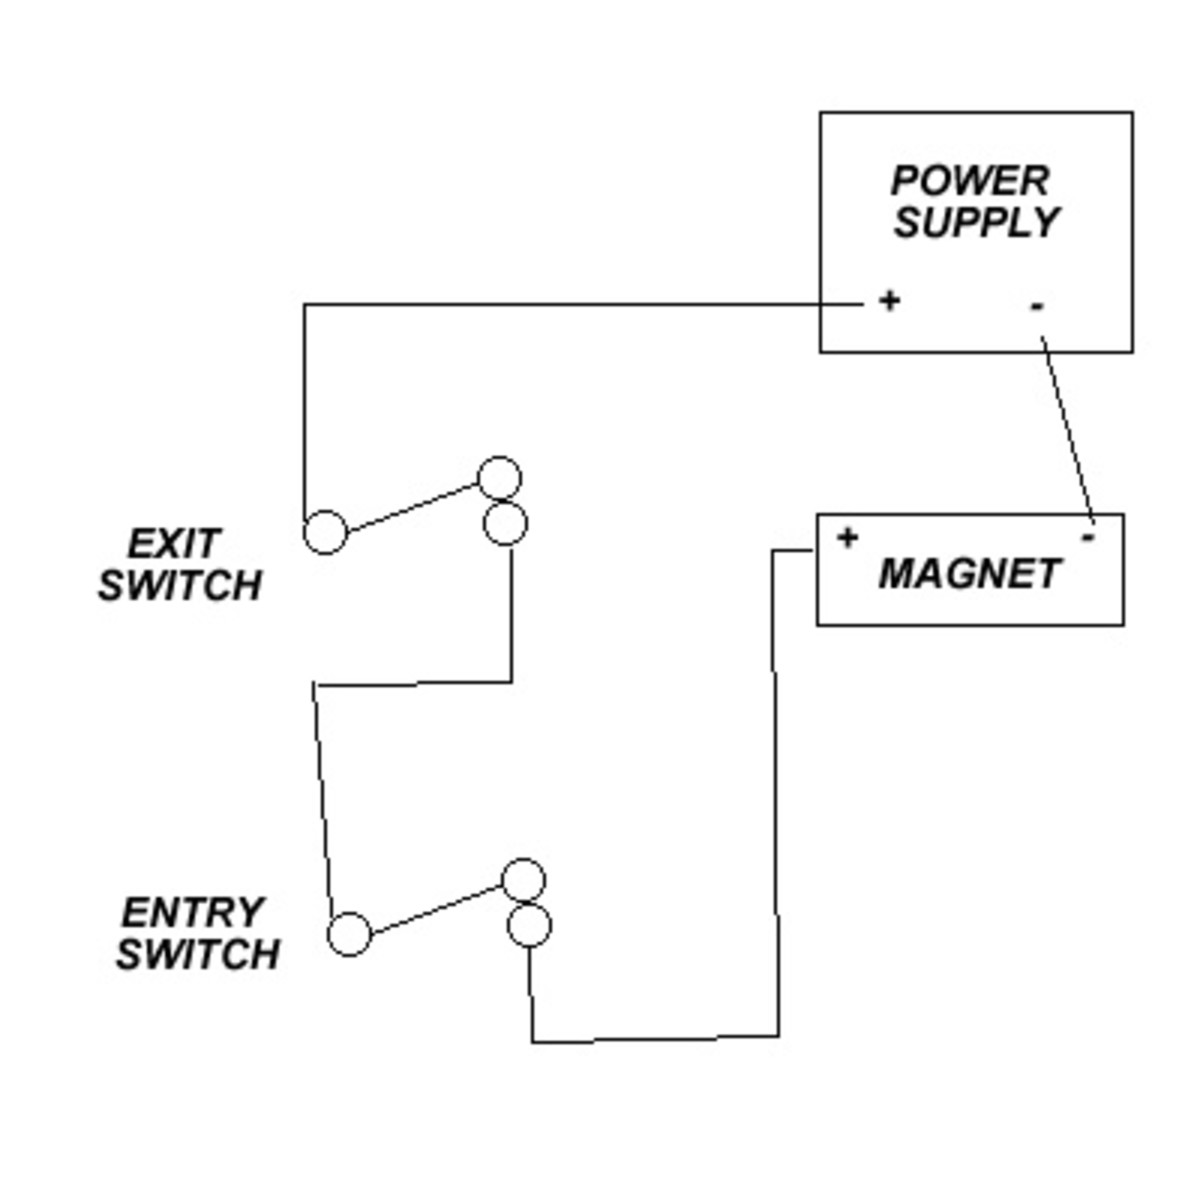 wiring diagram for door strikes with Electromag Ic Lock Diagram on Electromag ic Lock Diagram together with Adams Rite 8600 Wiring Diagram also Sargent Removable Mullion 570 furthermore